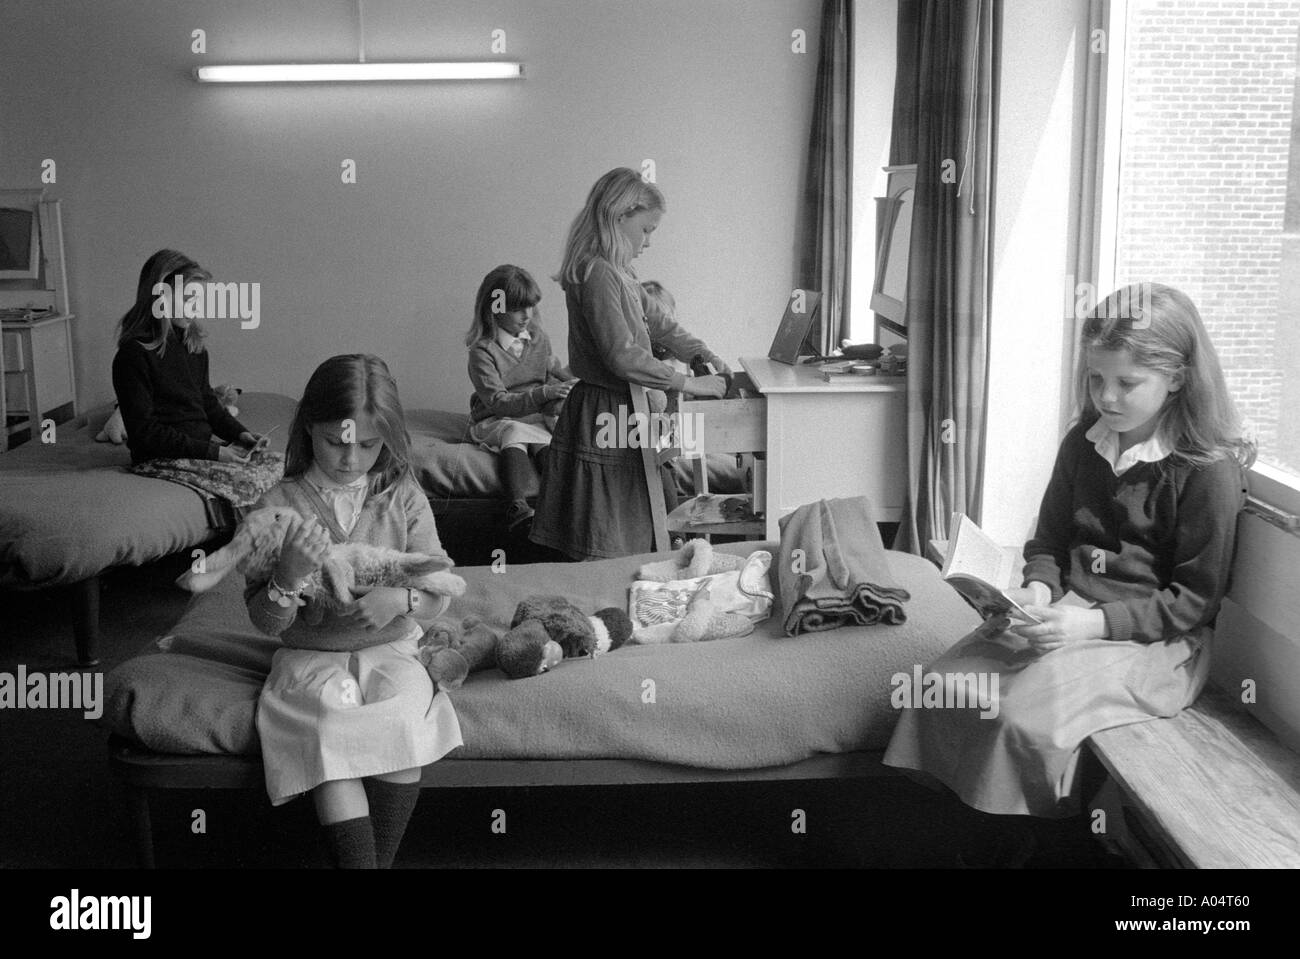 Kids chatting at night in girls dormitory at private boarding school - Stock Image